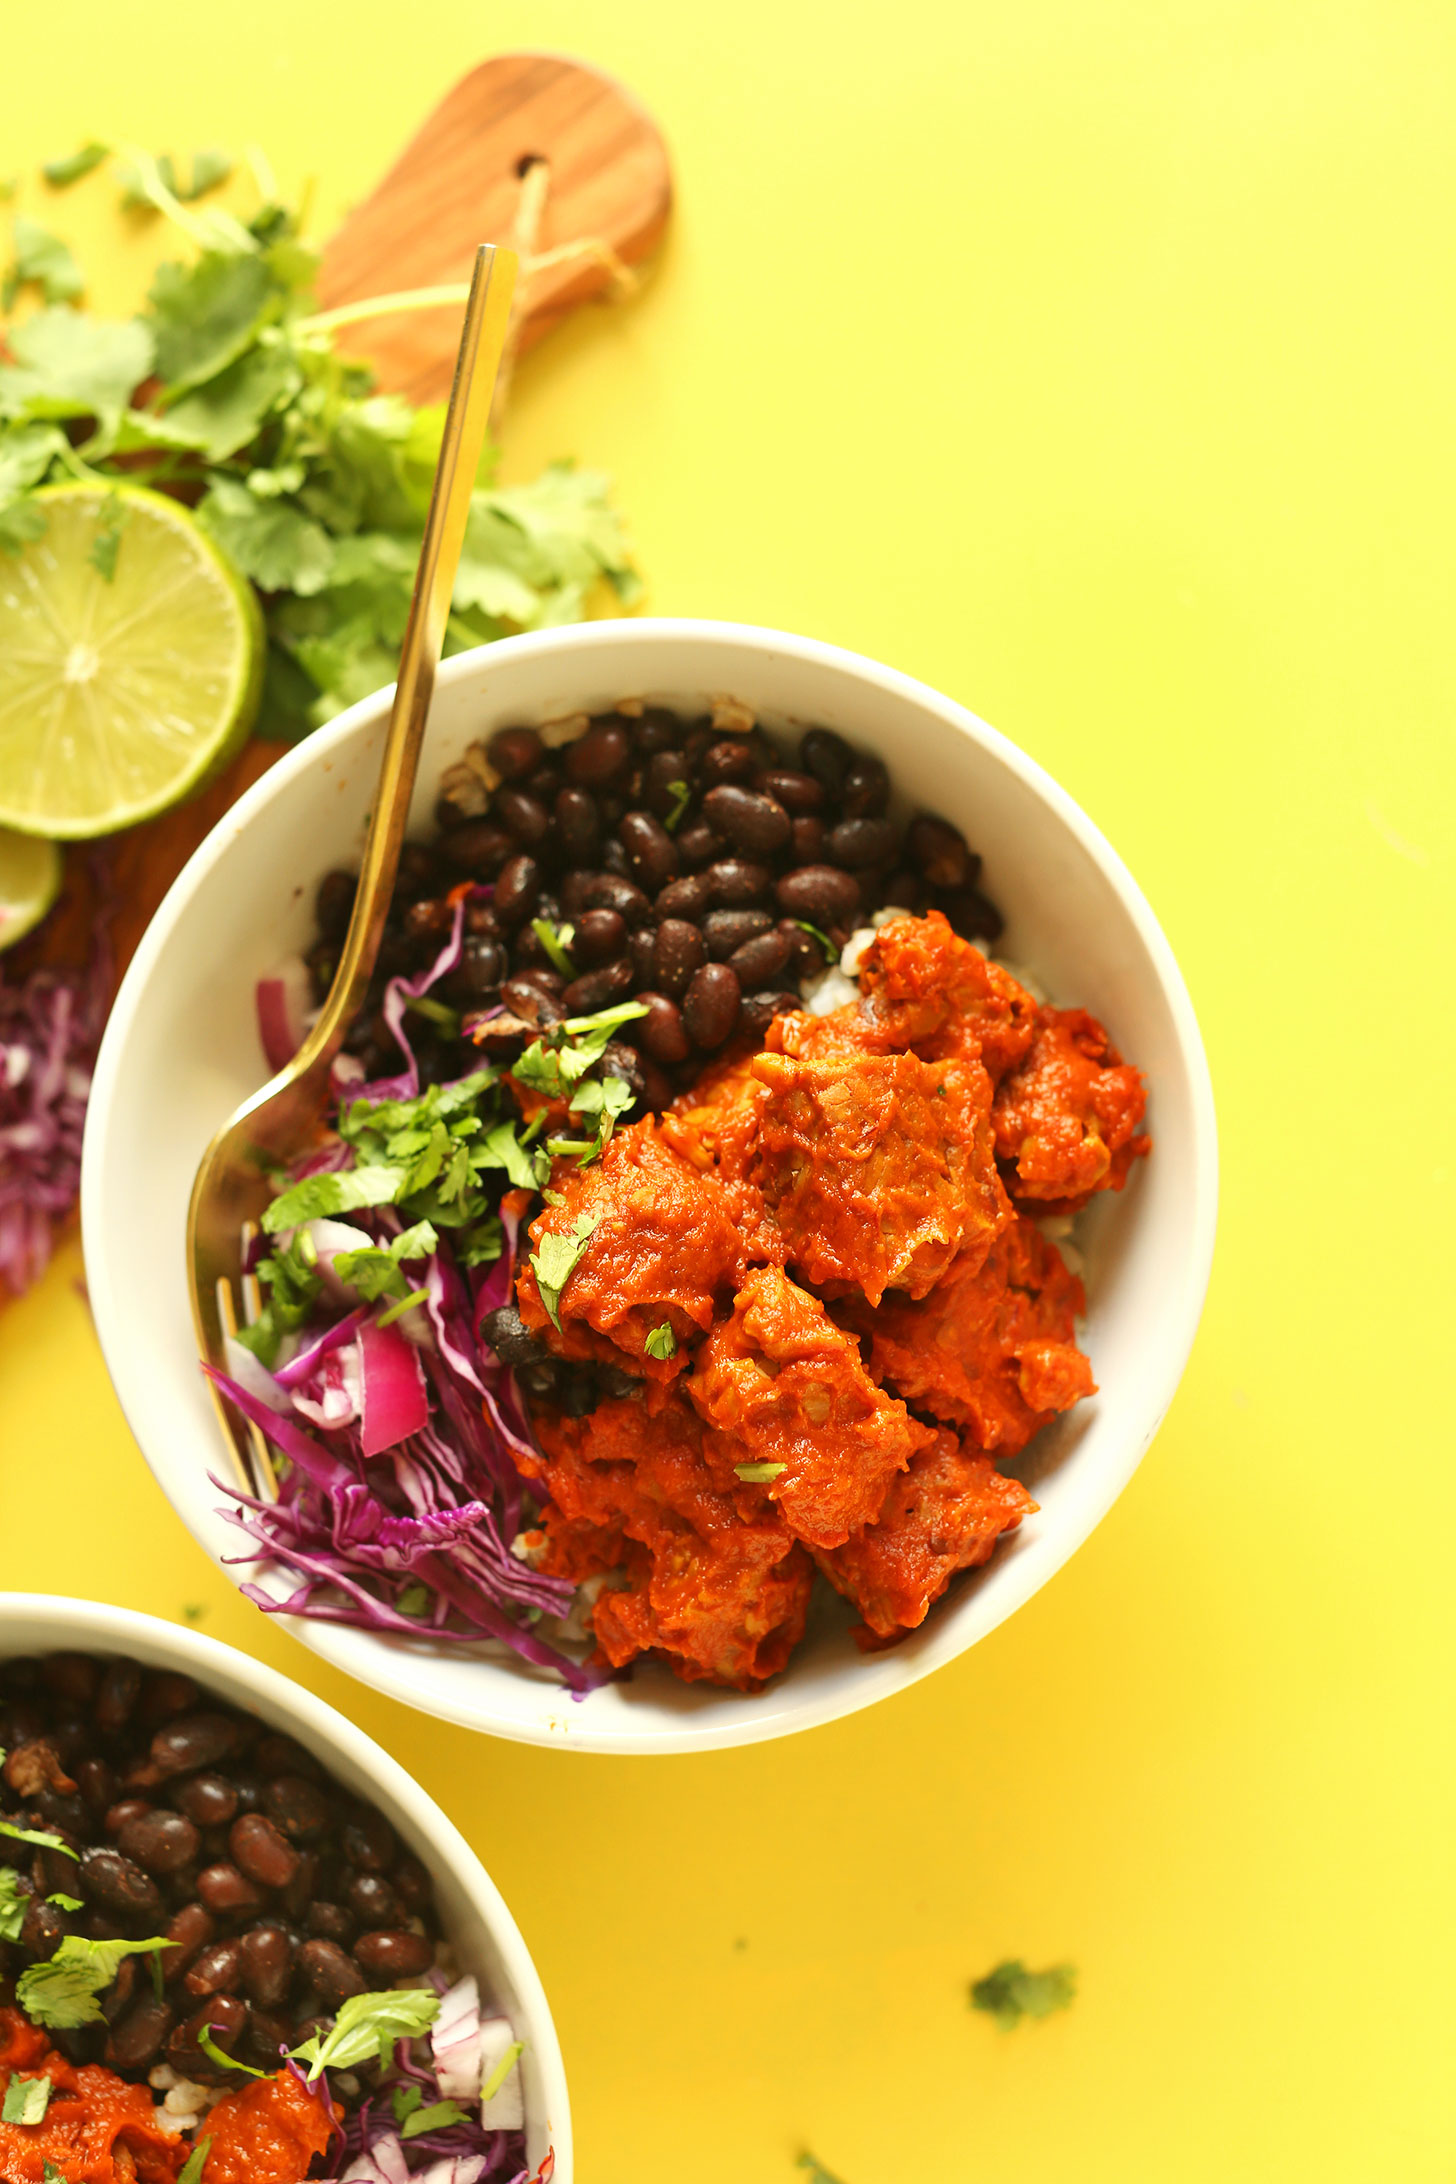 EASY Tempeh that TASTES GOOD! Smoky Tempeh Burrito Bowls with 9 basic ingredients! #vegan #glutenfree #tempeh #burrito #mexican #recipe #plantbased #minimalistbaker